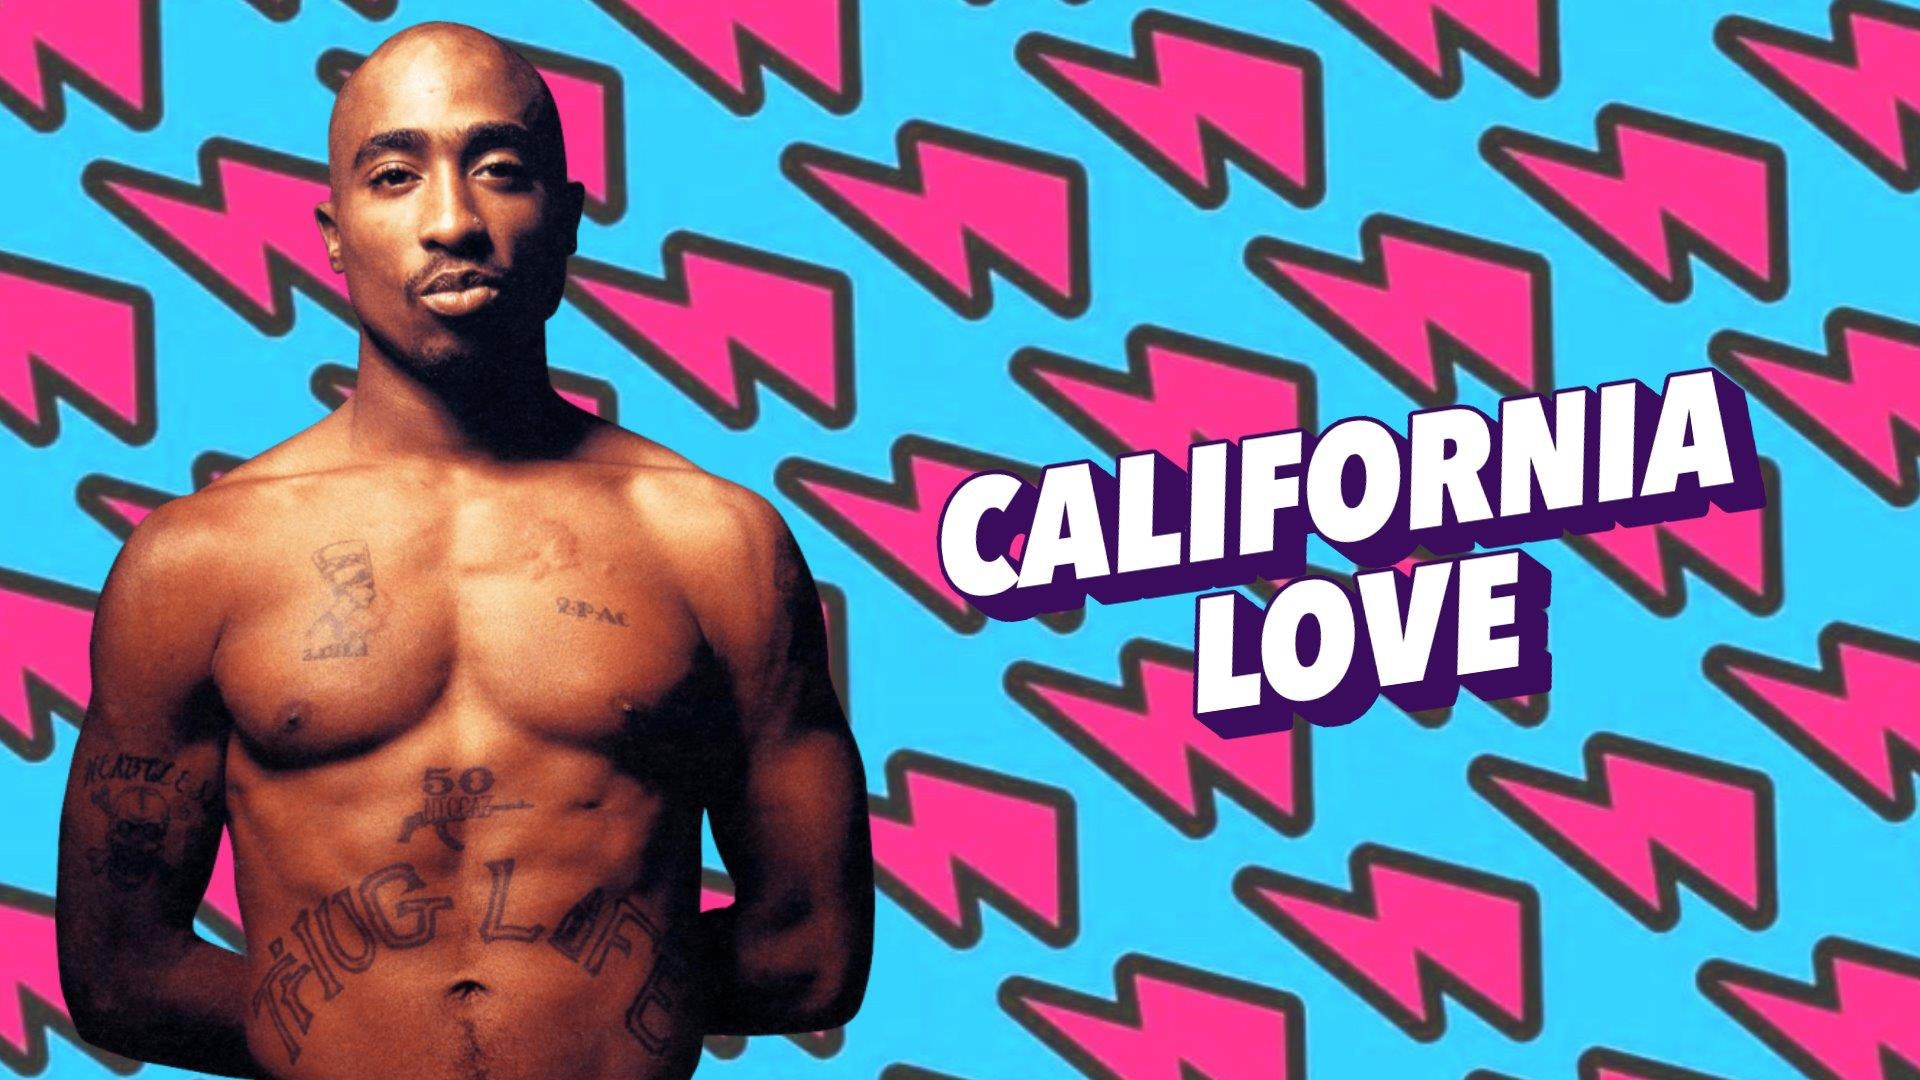 California Love (90s/00s Hip Hop & R&B)